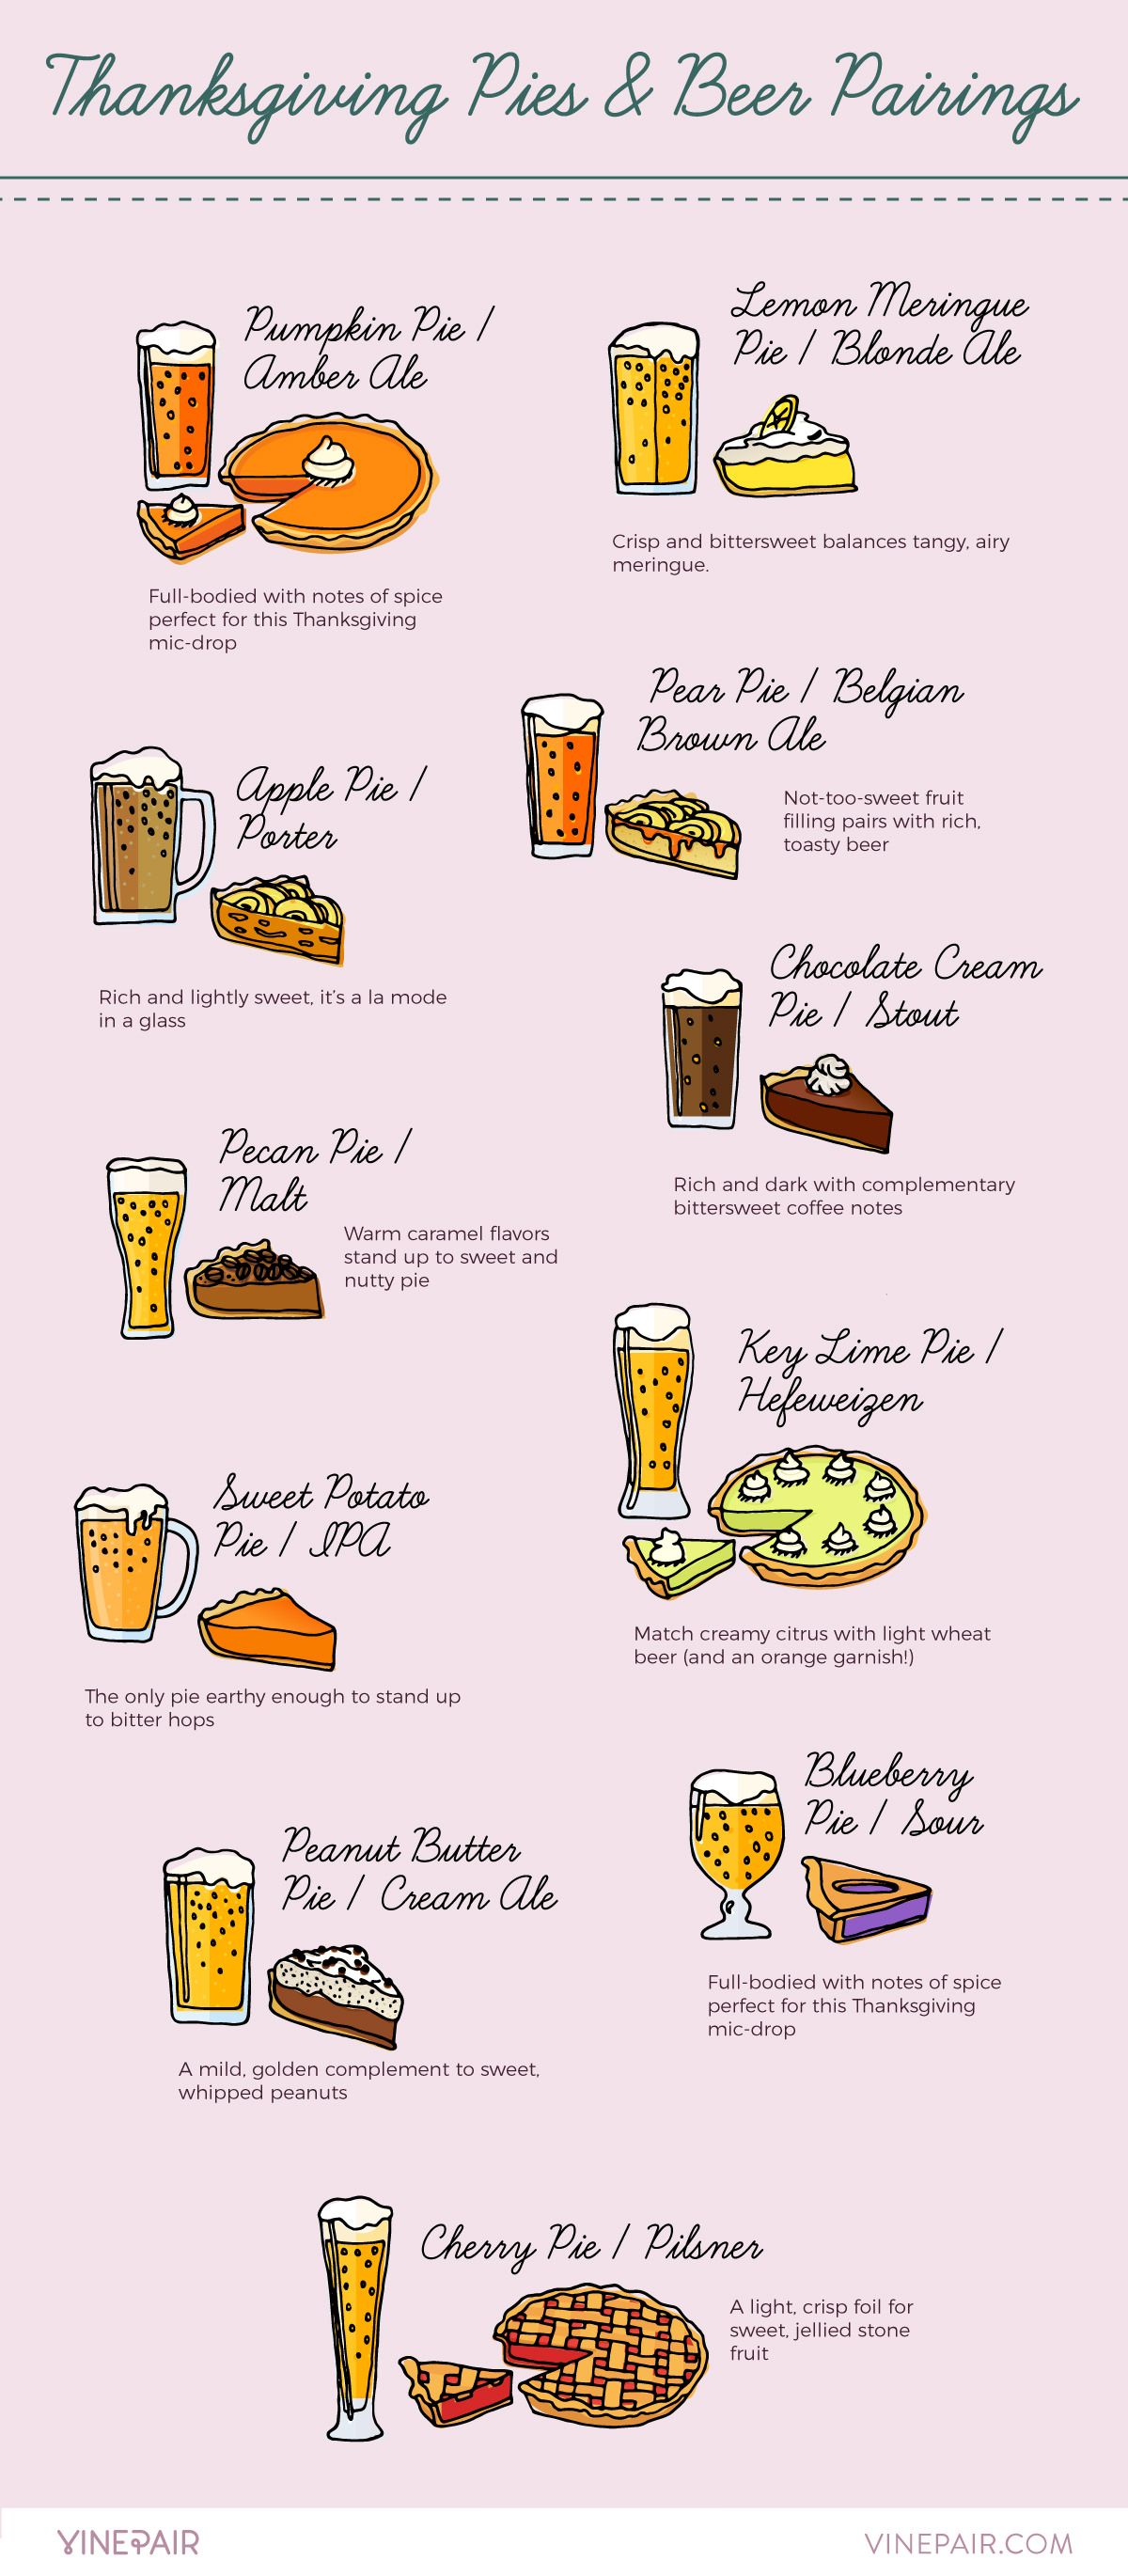 11 Favorite Thanksgiving Pies Paired With Beer